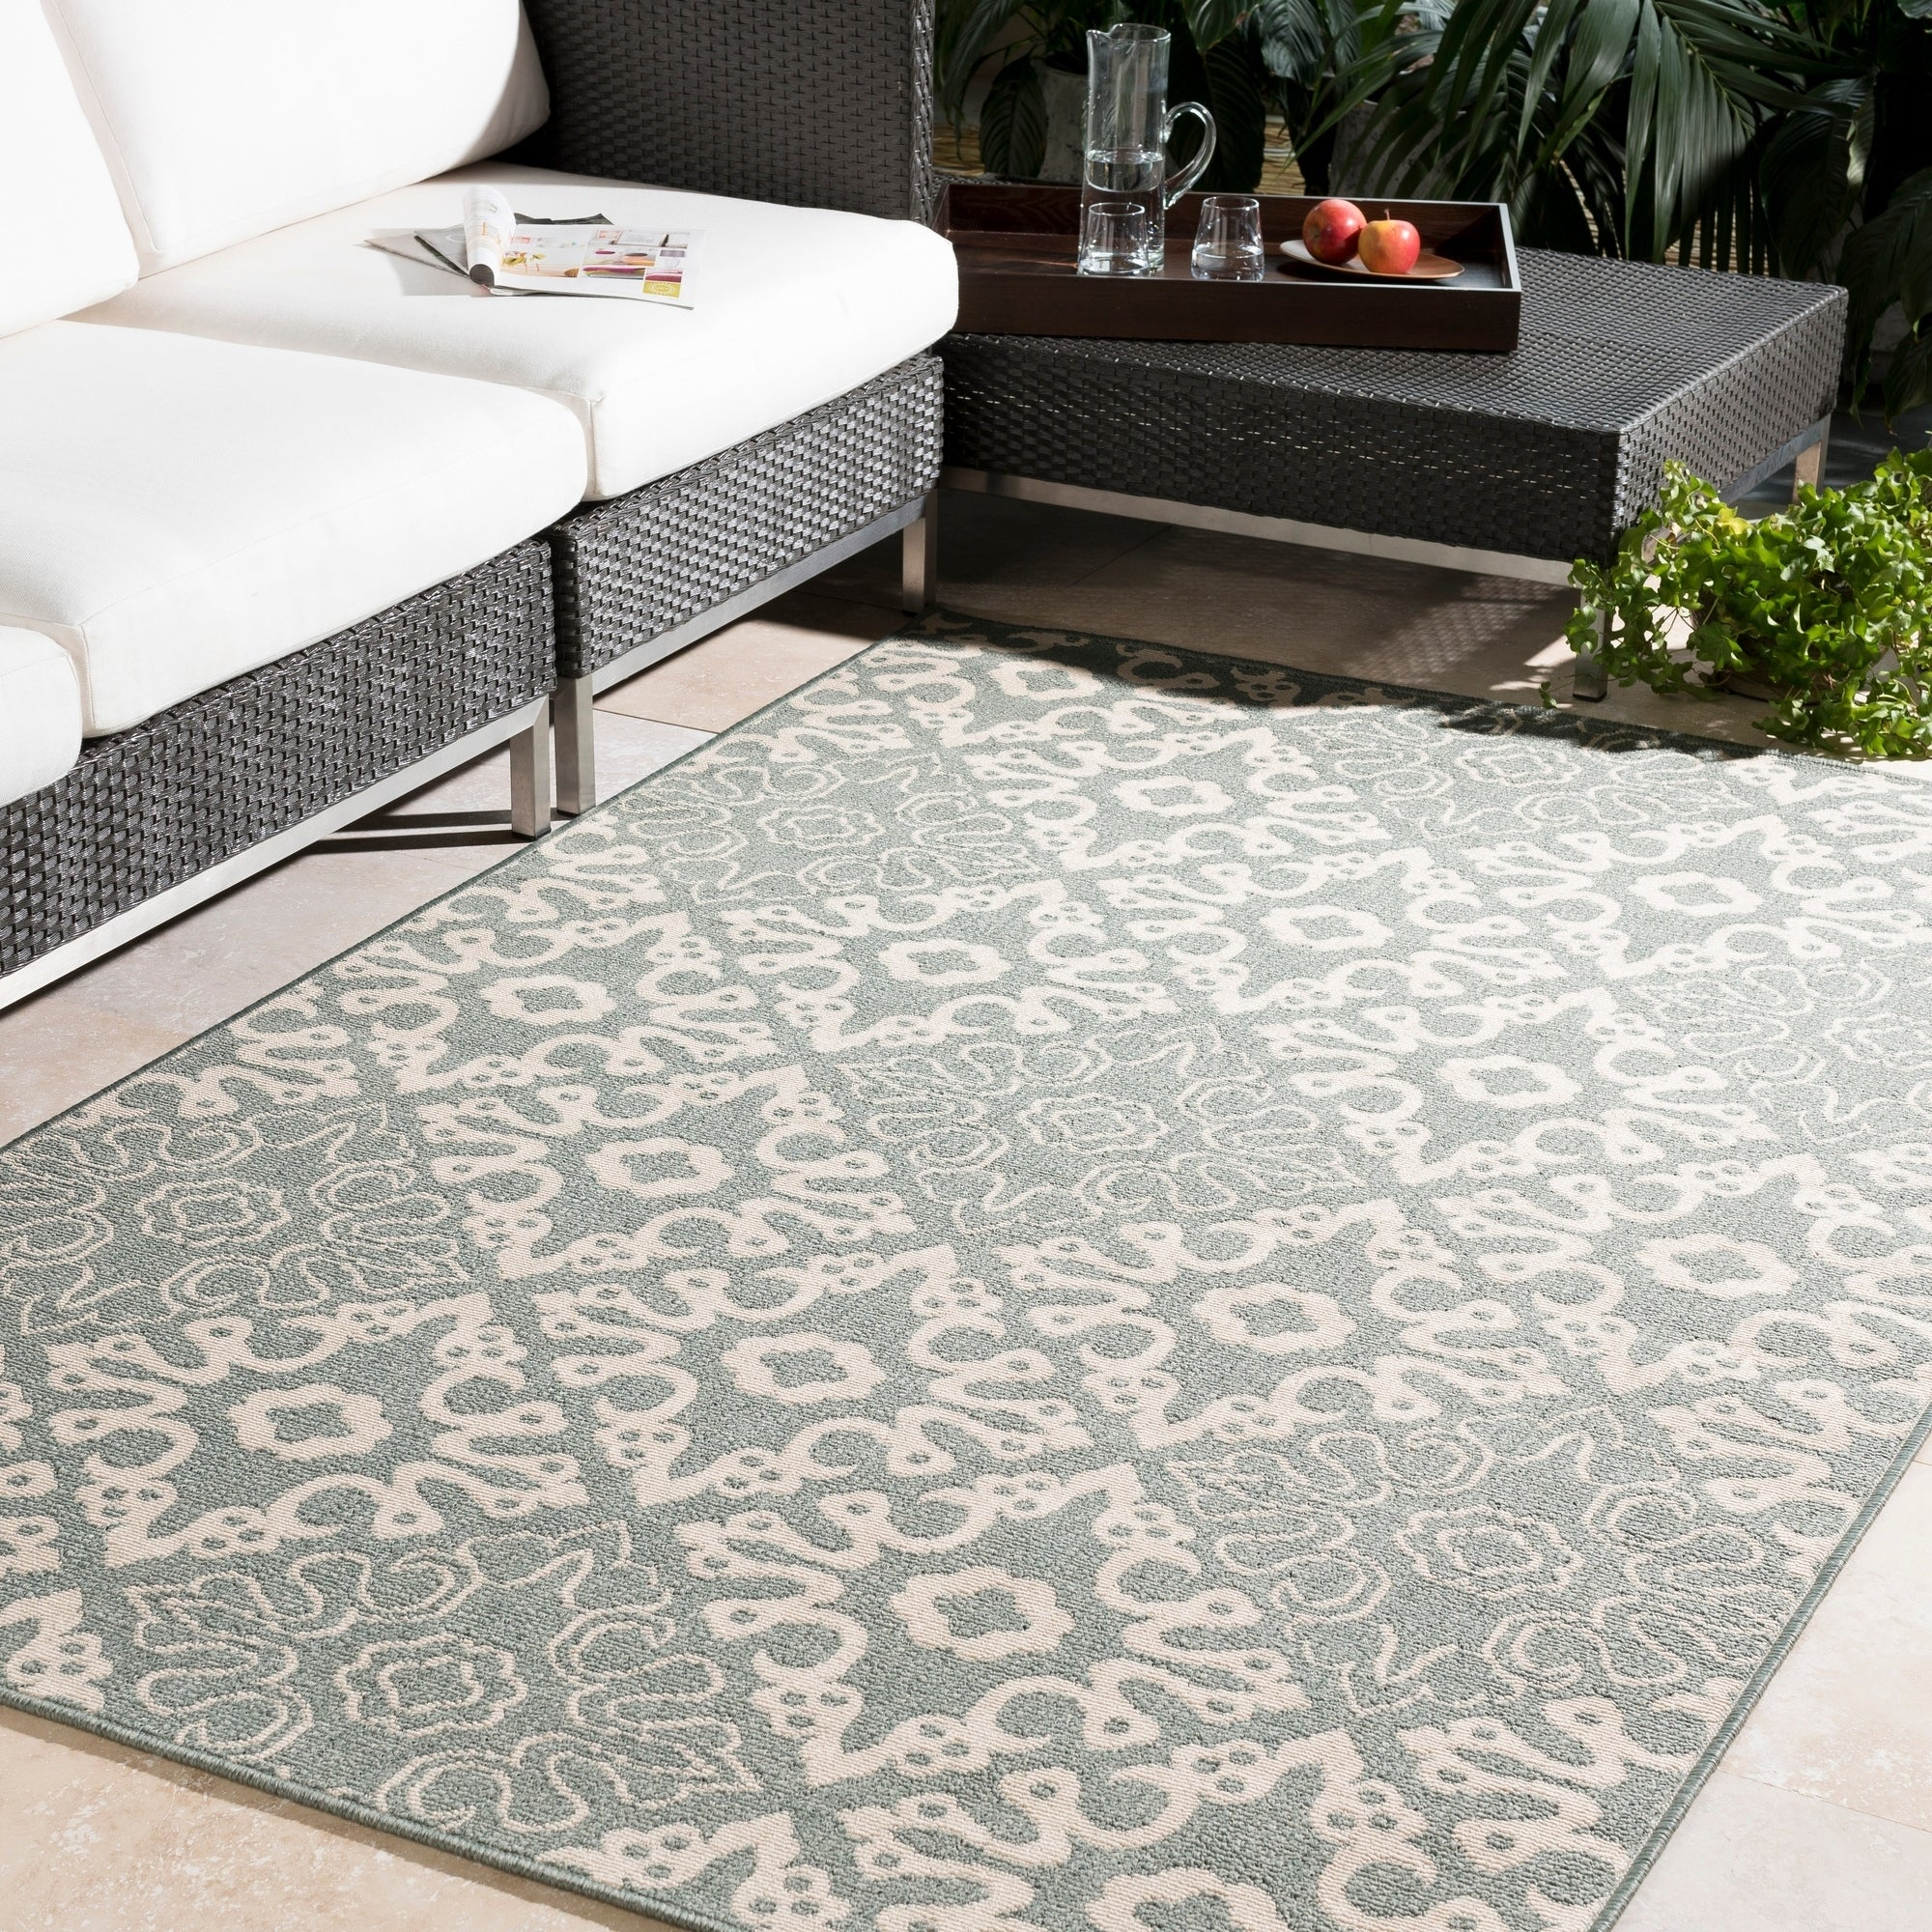 Overstock.com Meticulously Woven Olivia Contemporary Geometric Indoor/Outdoor Area Rug (5'3 Round) at Sears.com